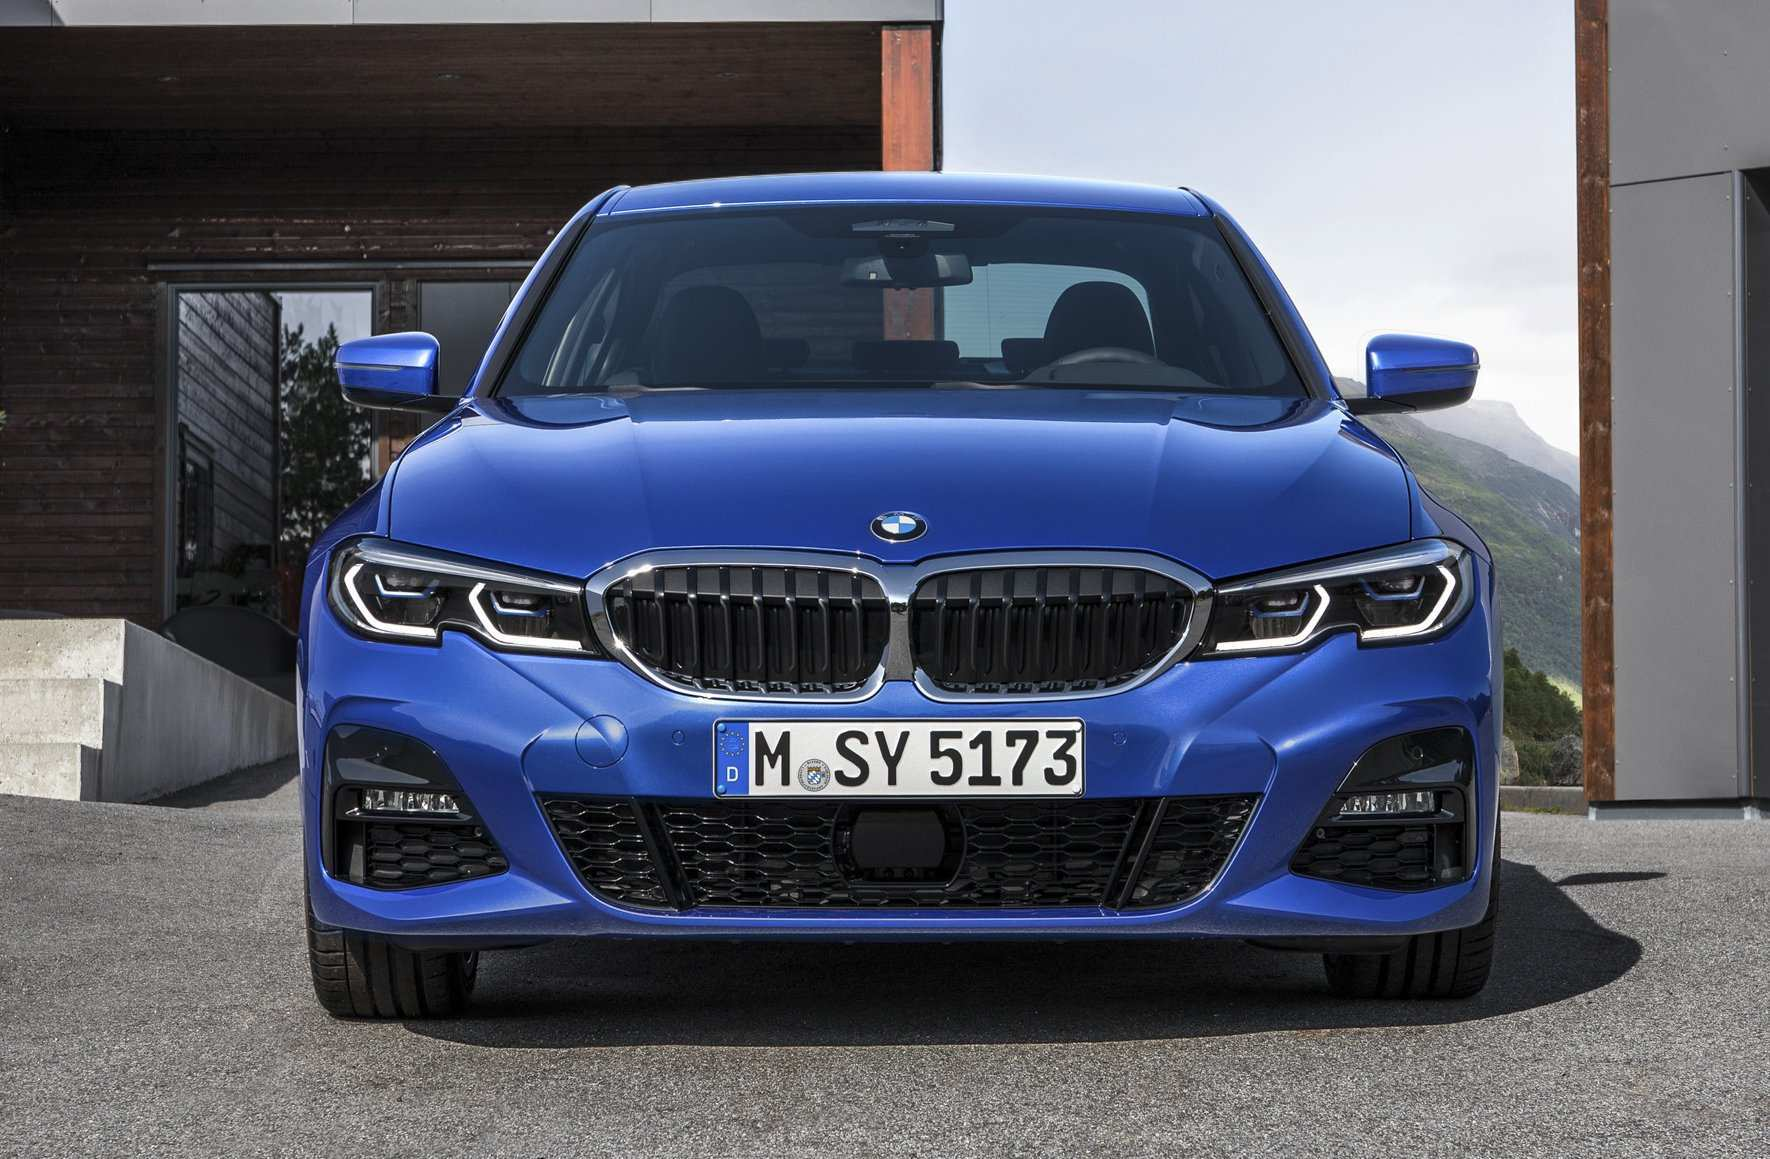 17 All New 2020 BMW 3 Series Brings Speed Test for 2020 BMW 3 Series Brings